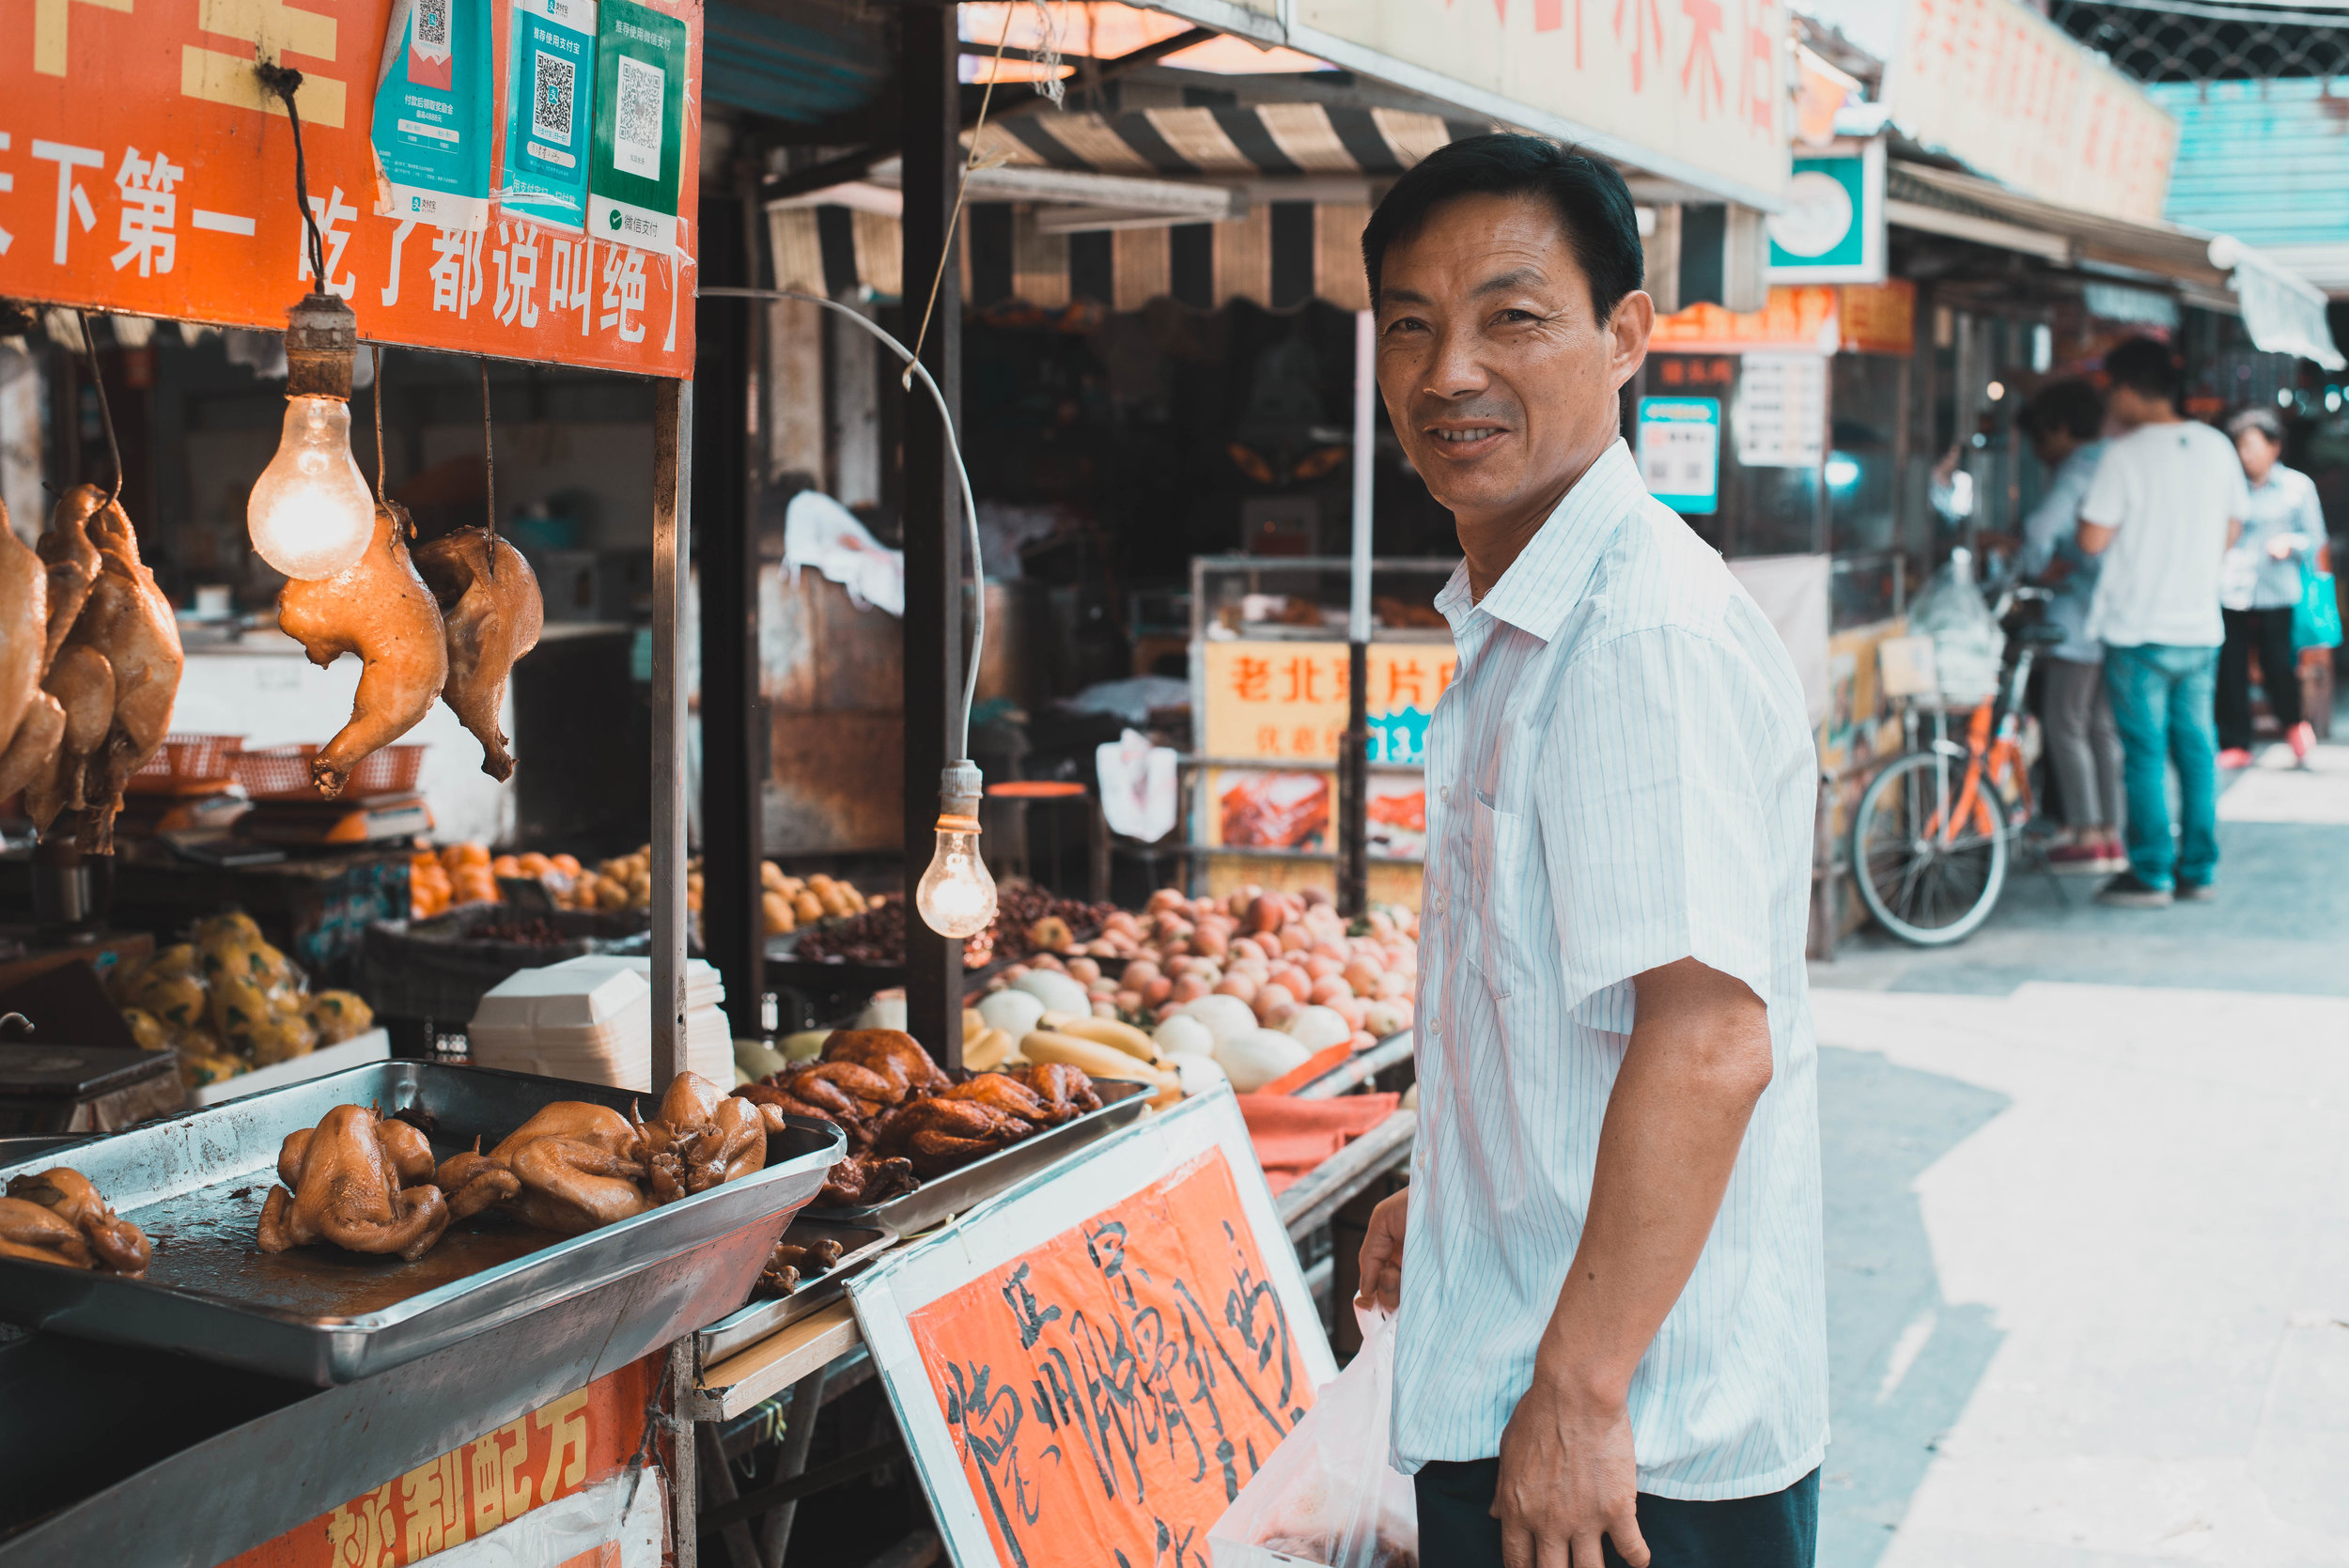 See what it's like to shop at a wet market in Nanjing